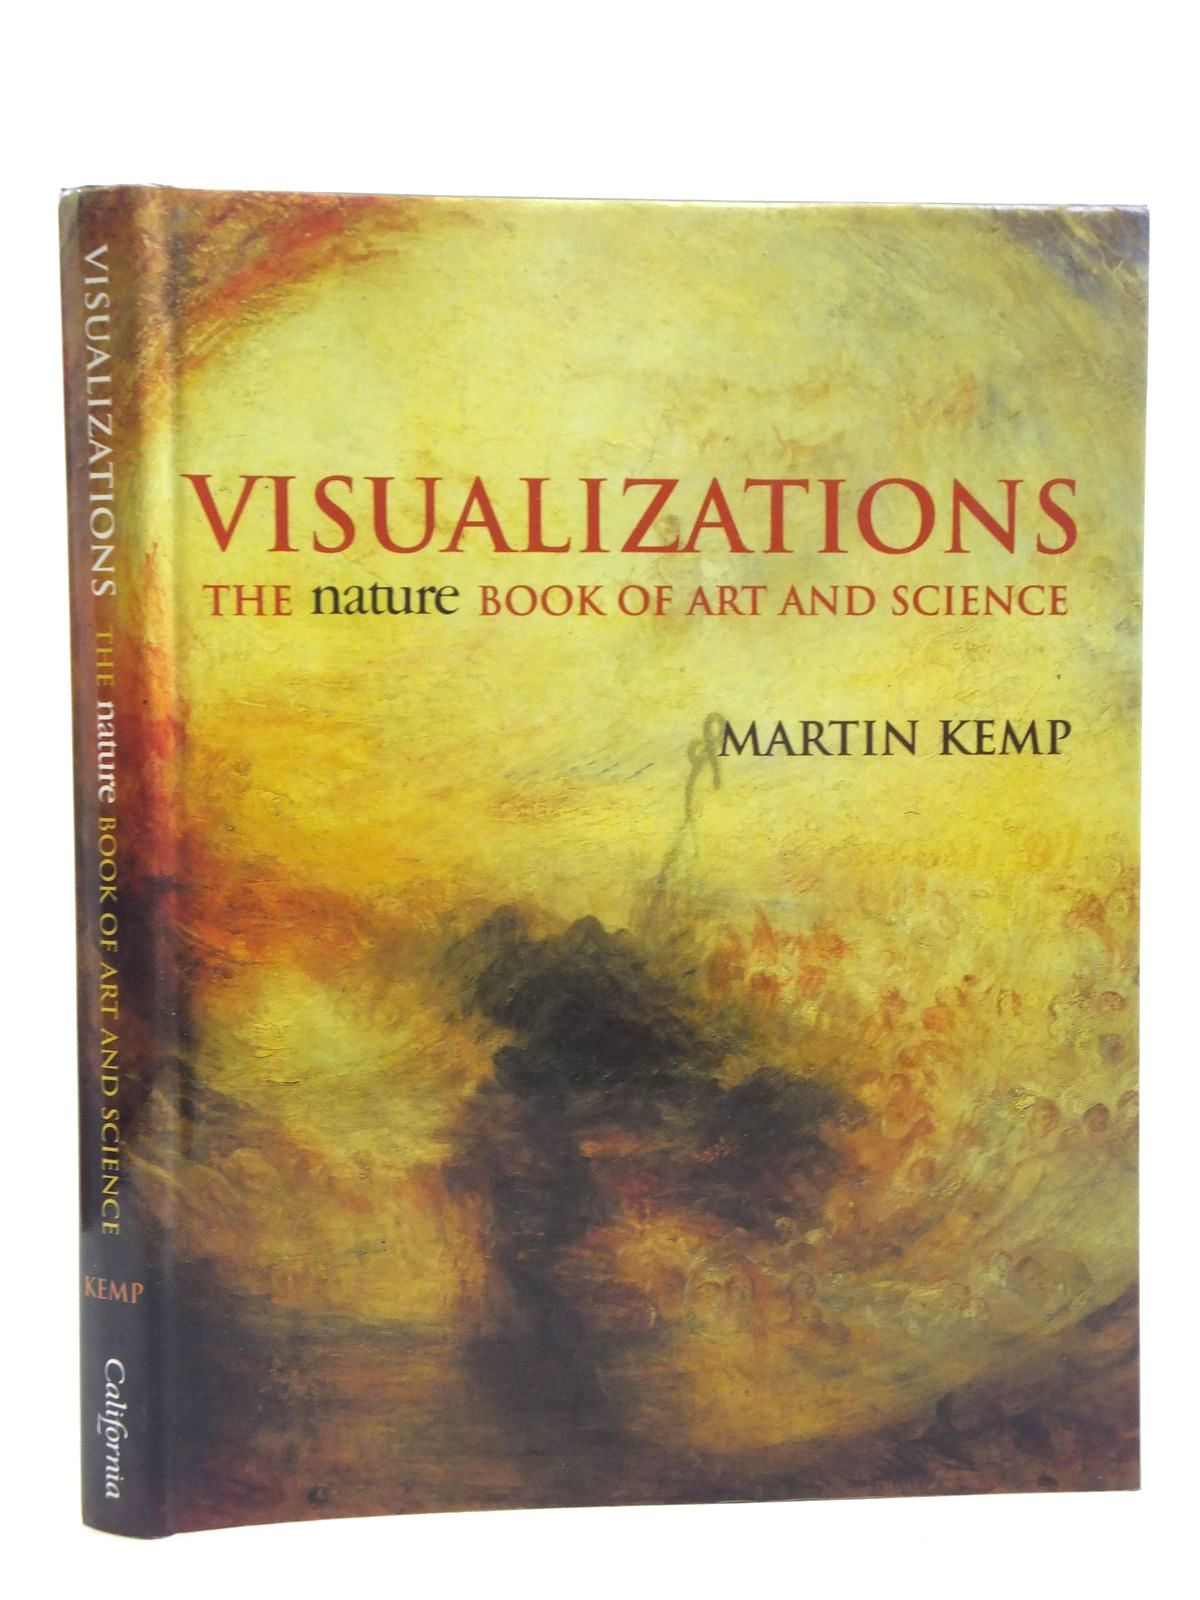 Photo of VISUALIZATIONS THE NATURE BOOK OF ART AND SCIENCE written by Kemp, Martin published by University of California Press (STOCK CODE: 1607731)  for sale by Stella & Rose's Books